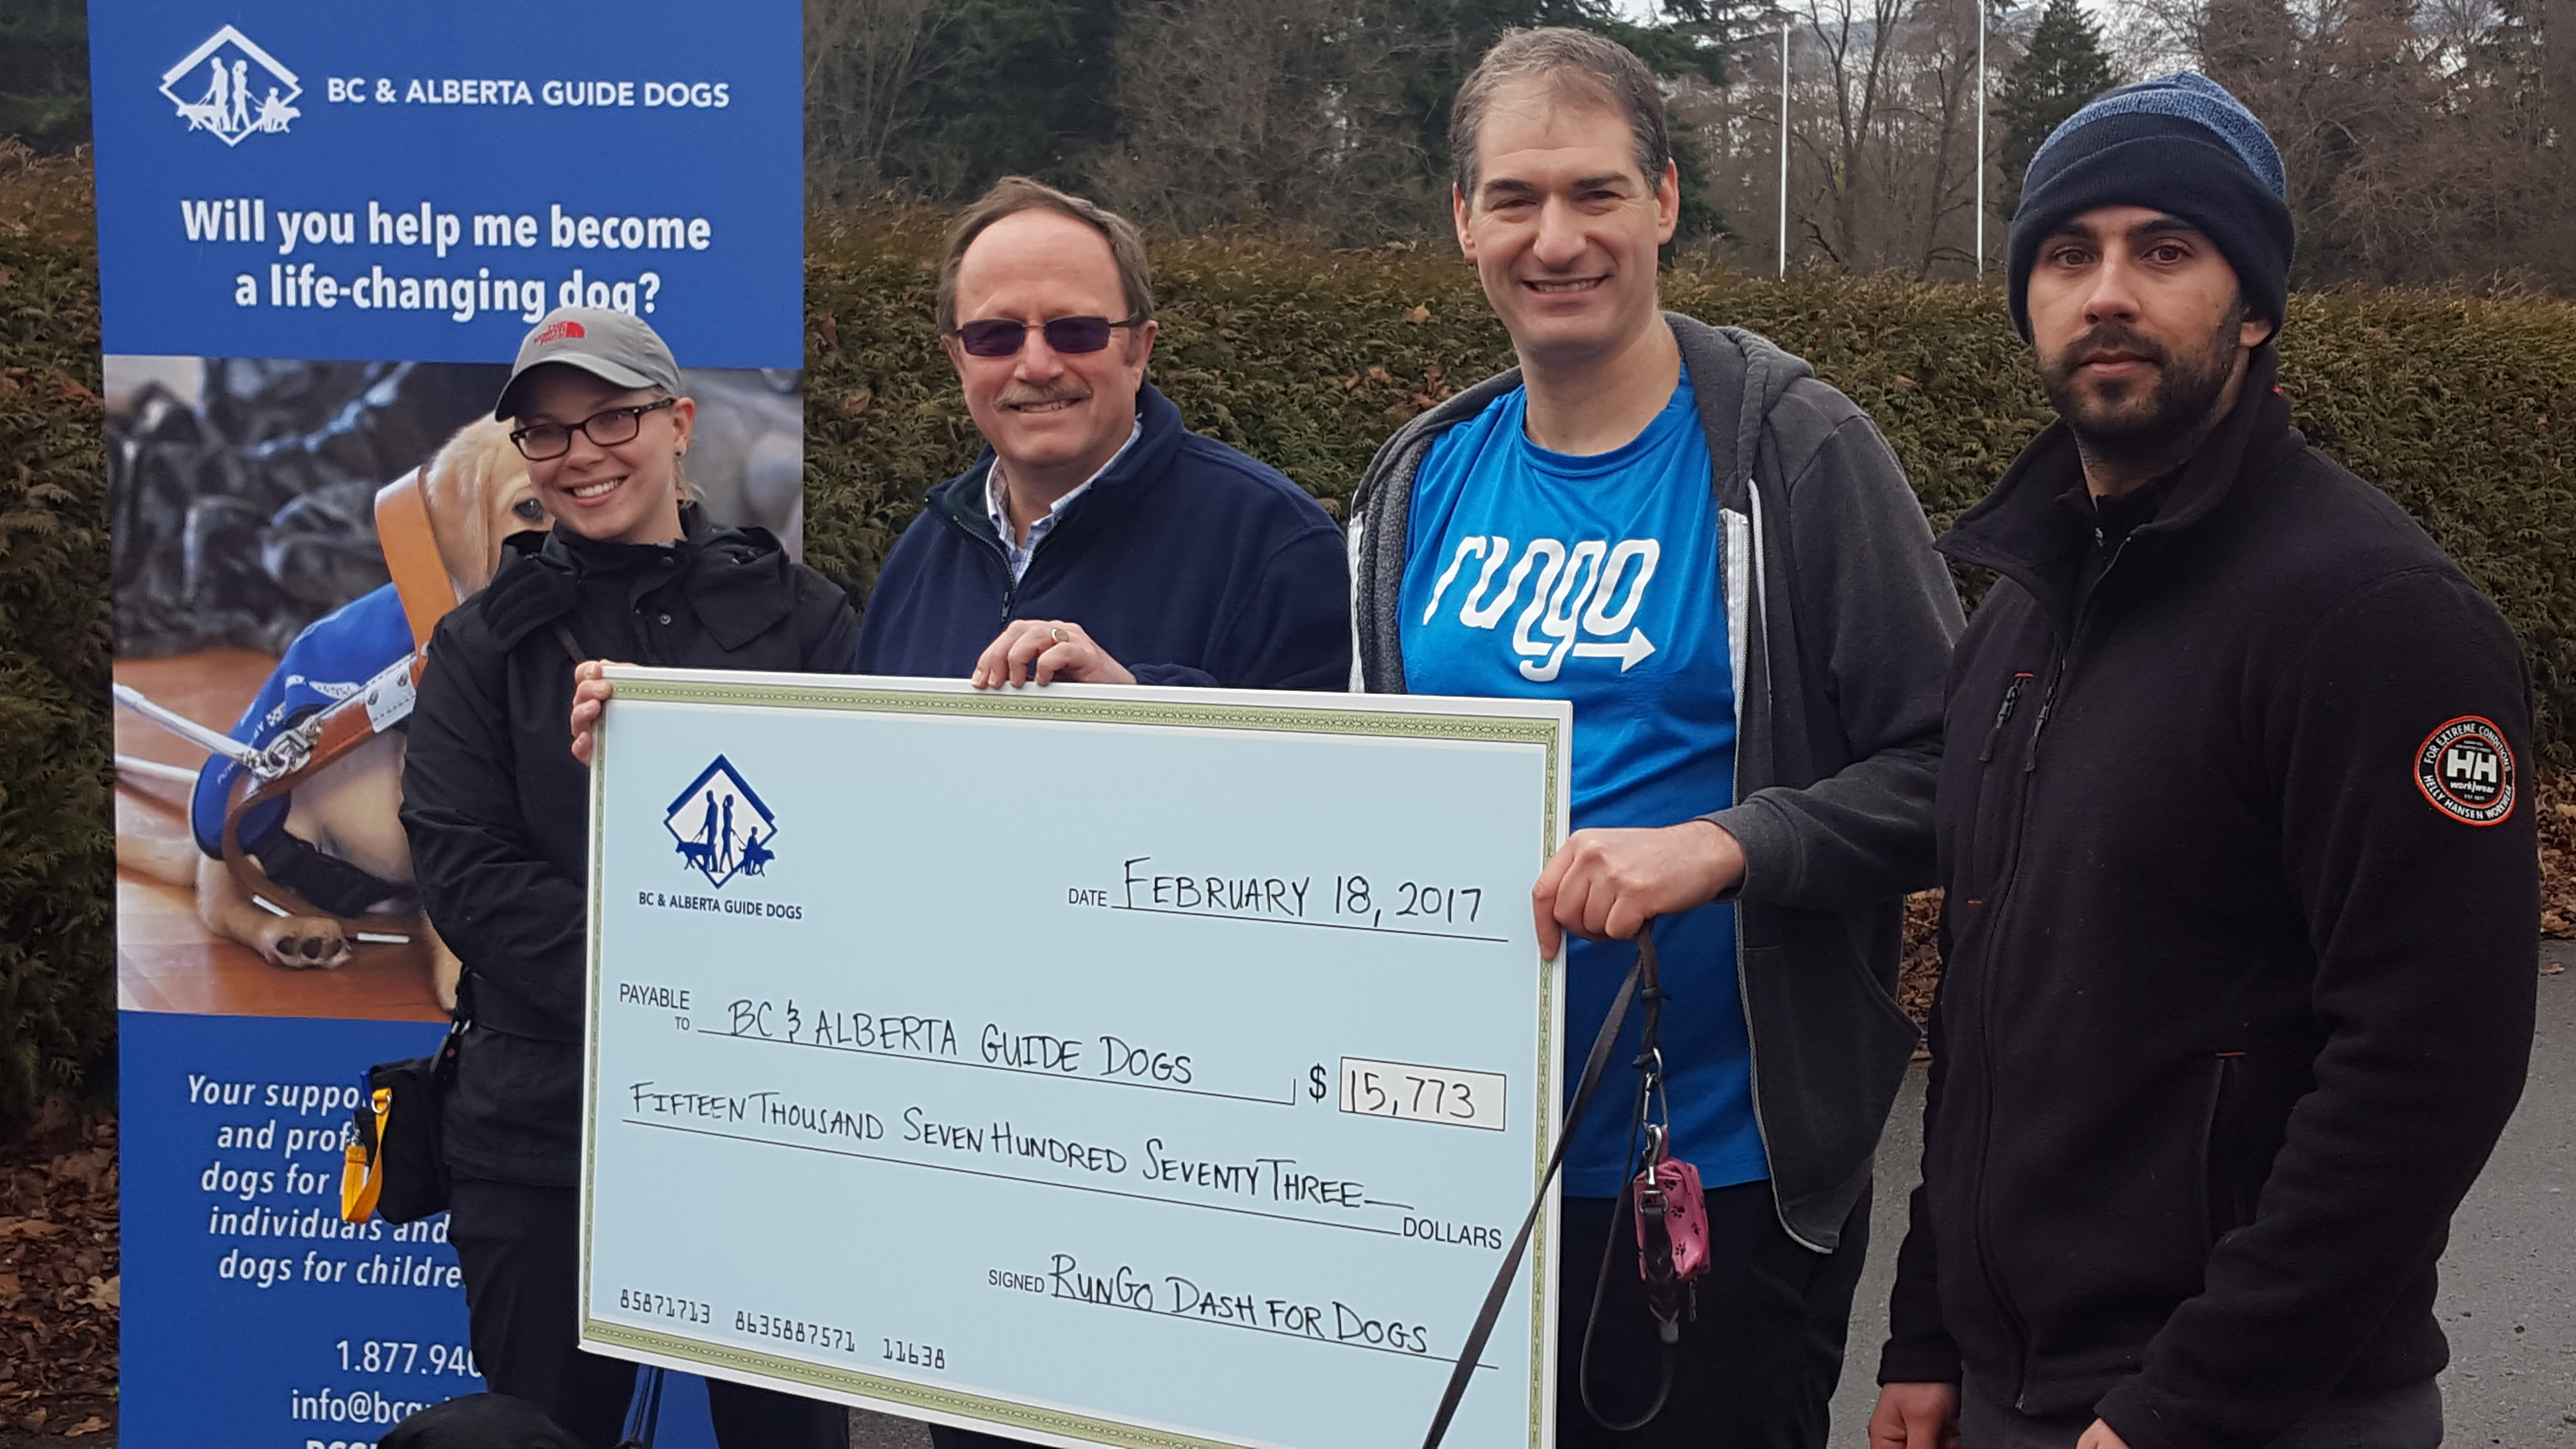 RunGo Dash for Dogs 2017 Raises $16,000 for BC & Alberta Guide Dogs